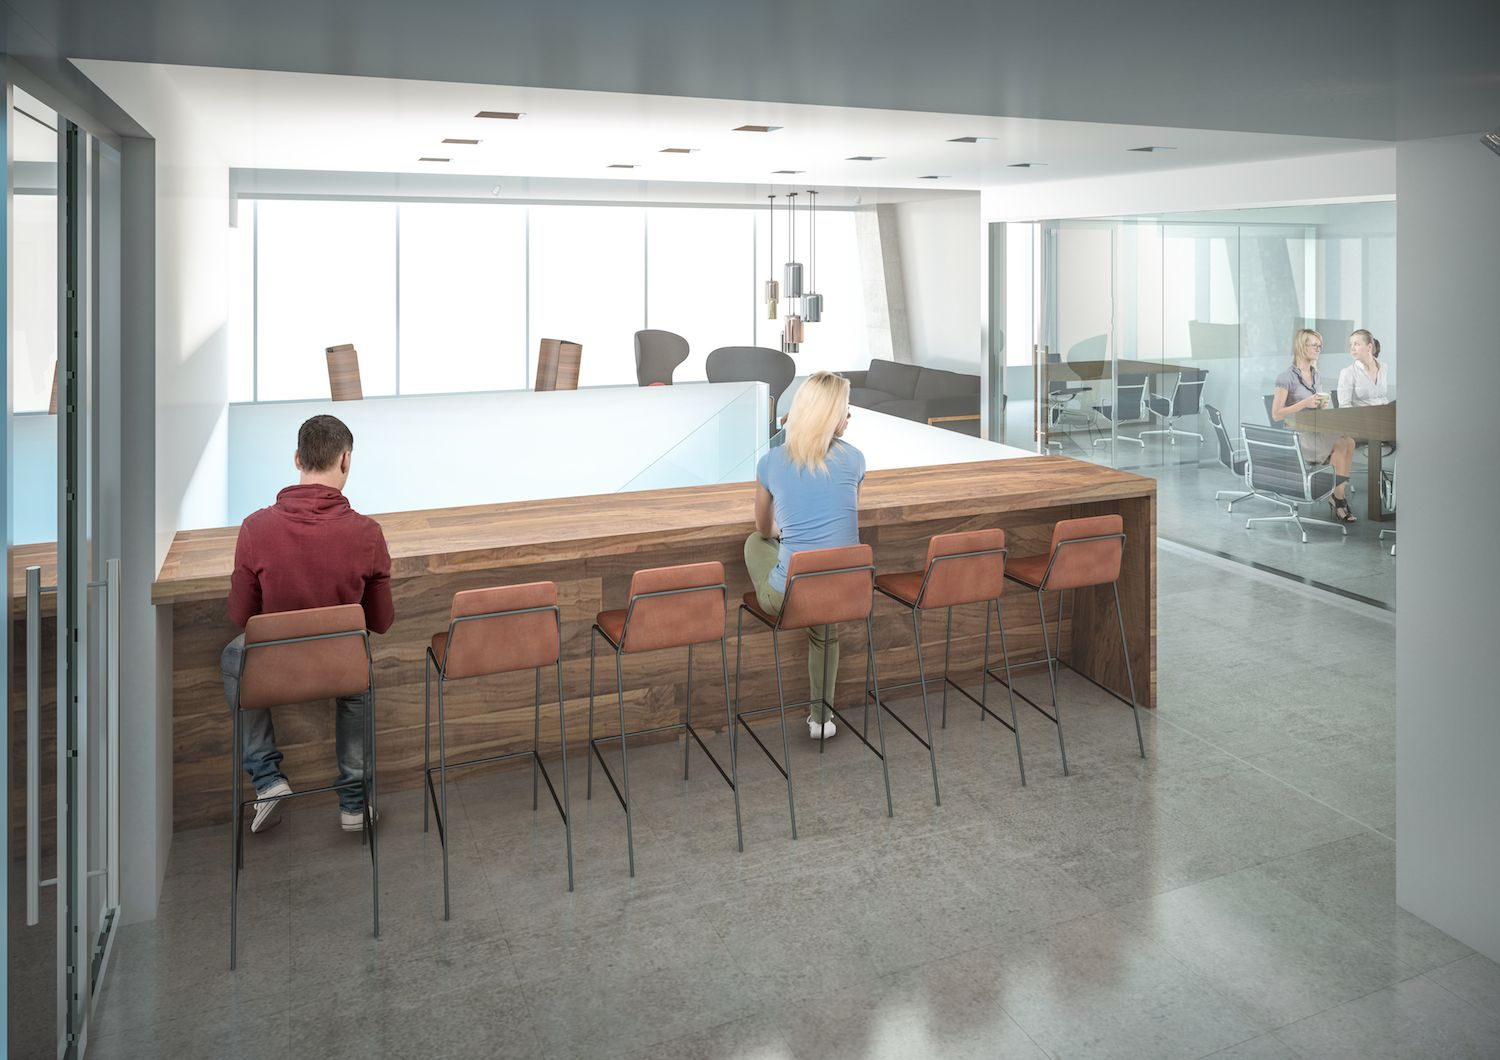 Younger workers crave more open office environments while older employees want their walls.